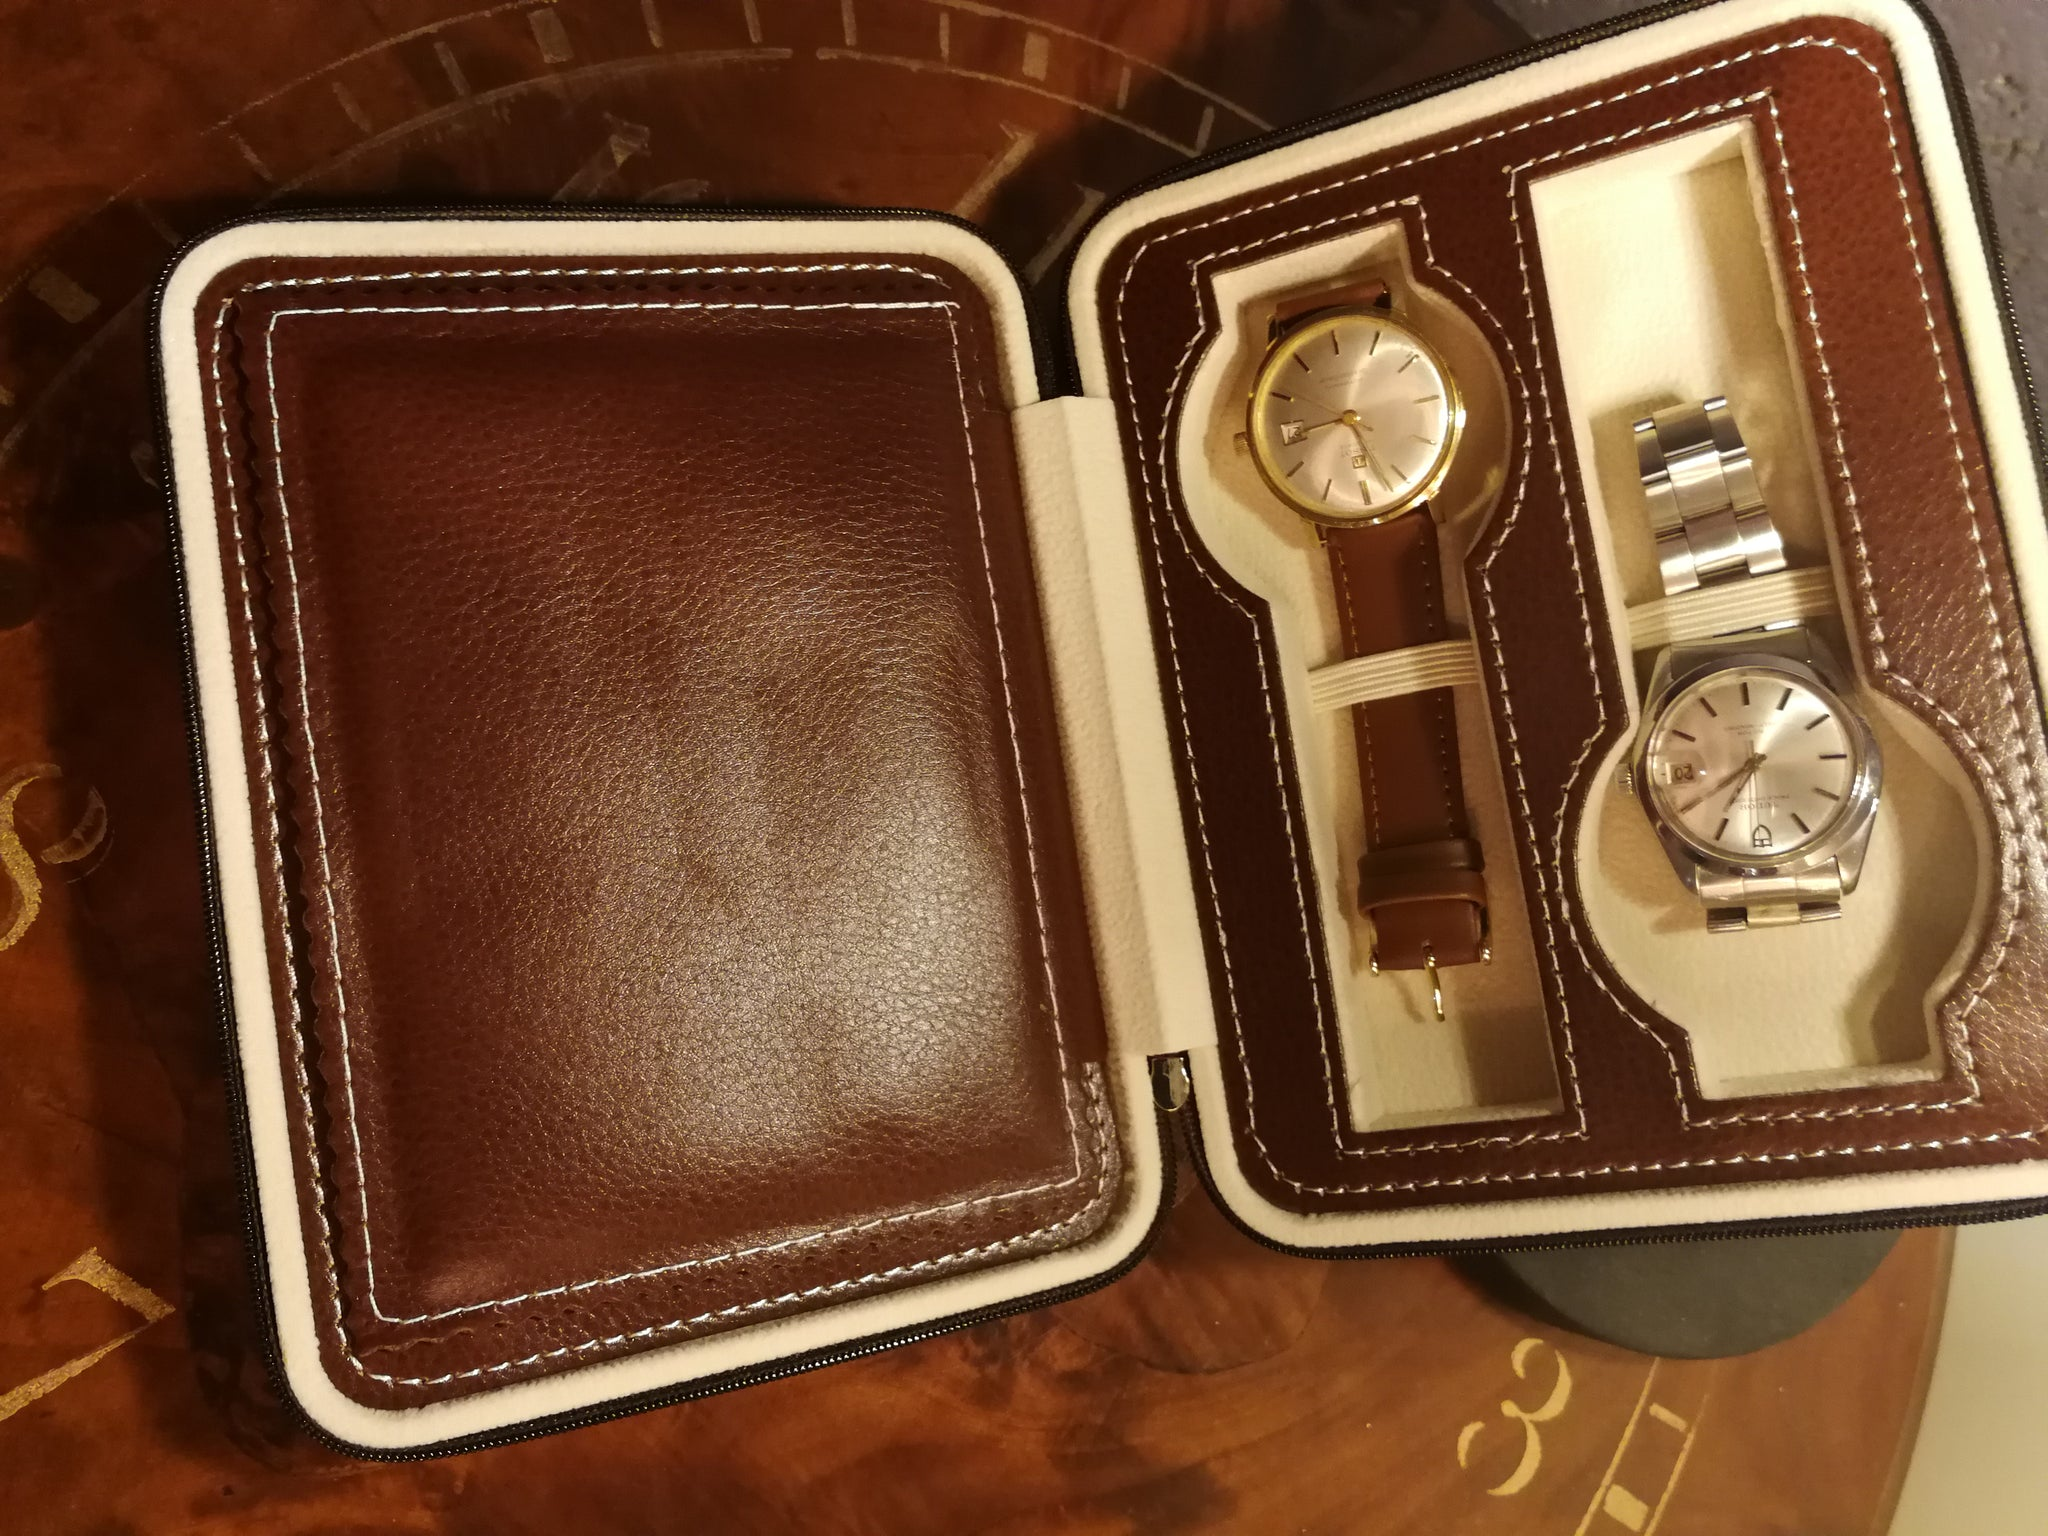 Watch Travel Case 4 The Watch Boutique Uk